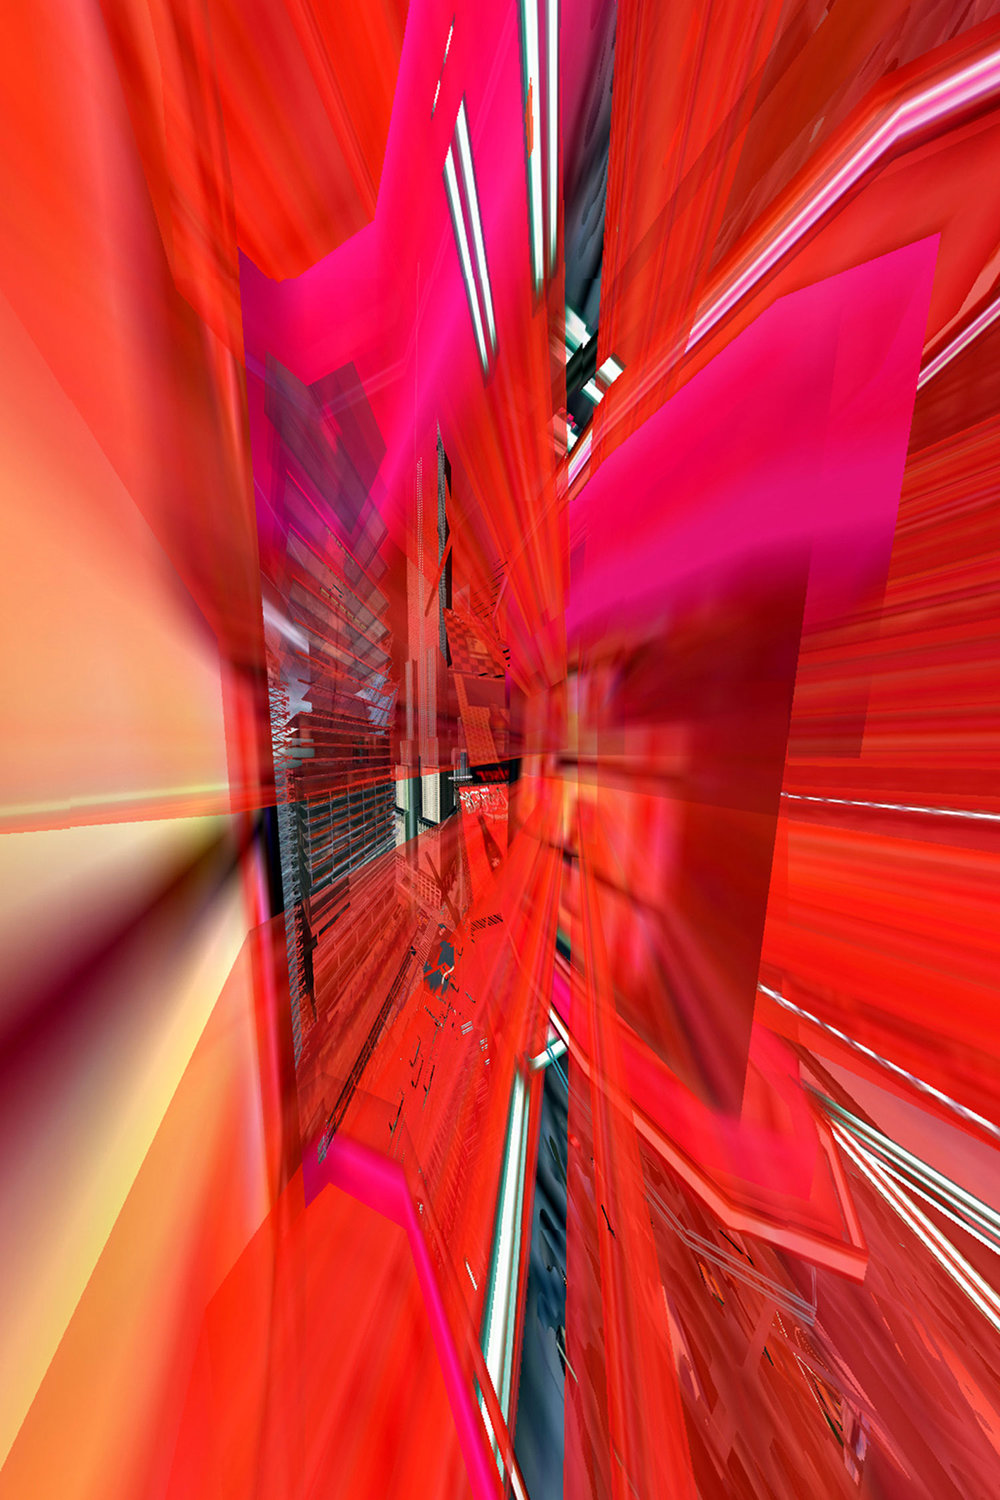 Times Square Descent Into Paranoia (New York Exit New York© Series, No. 1)